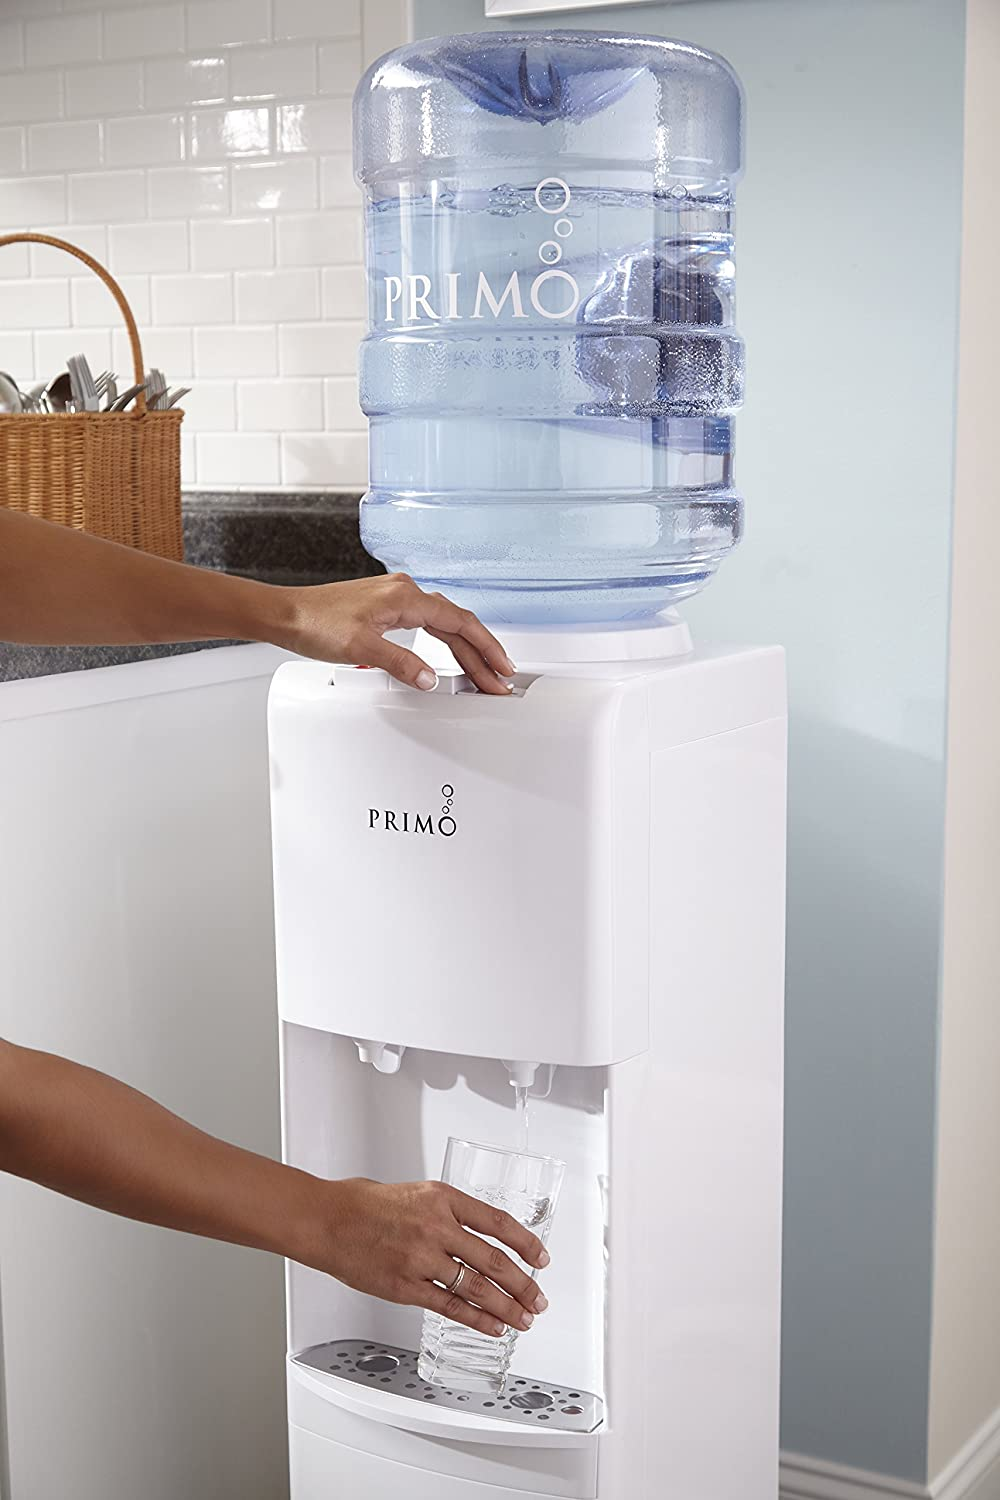 Primo White 2 Spout Top Load Hot and Cold Water Cooler Dispenser